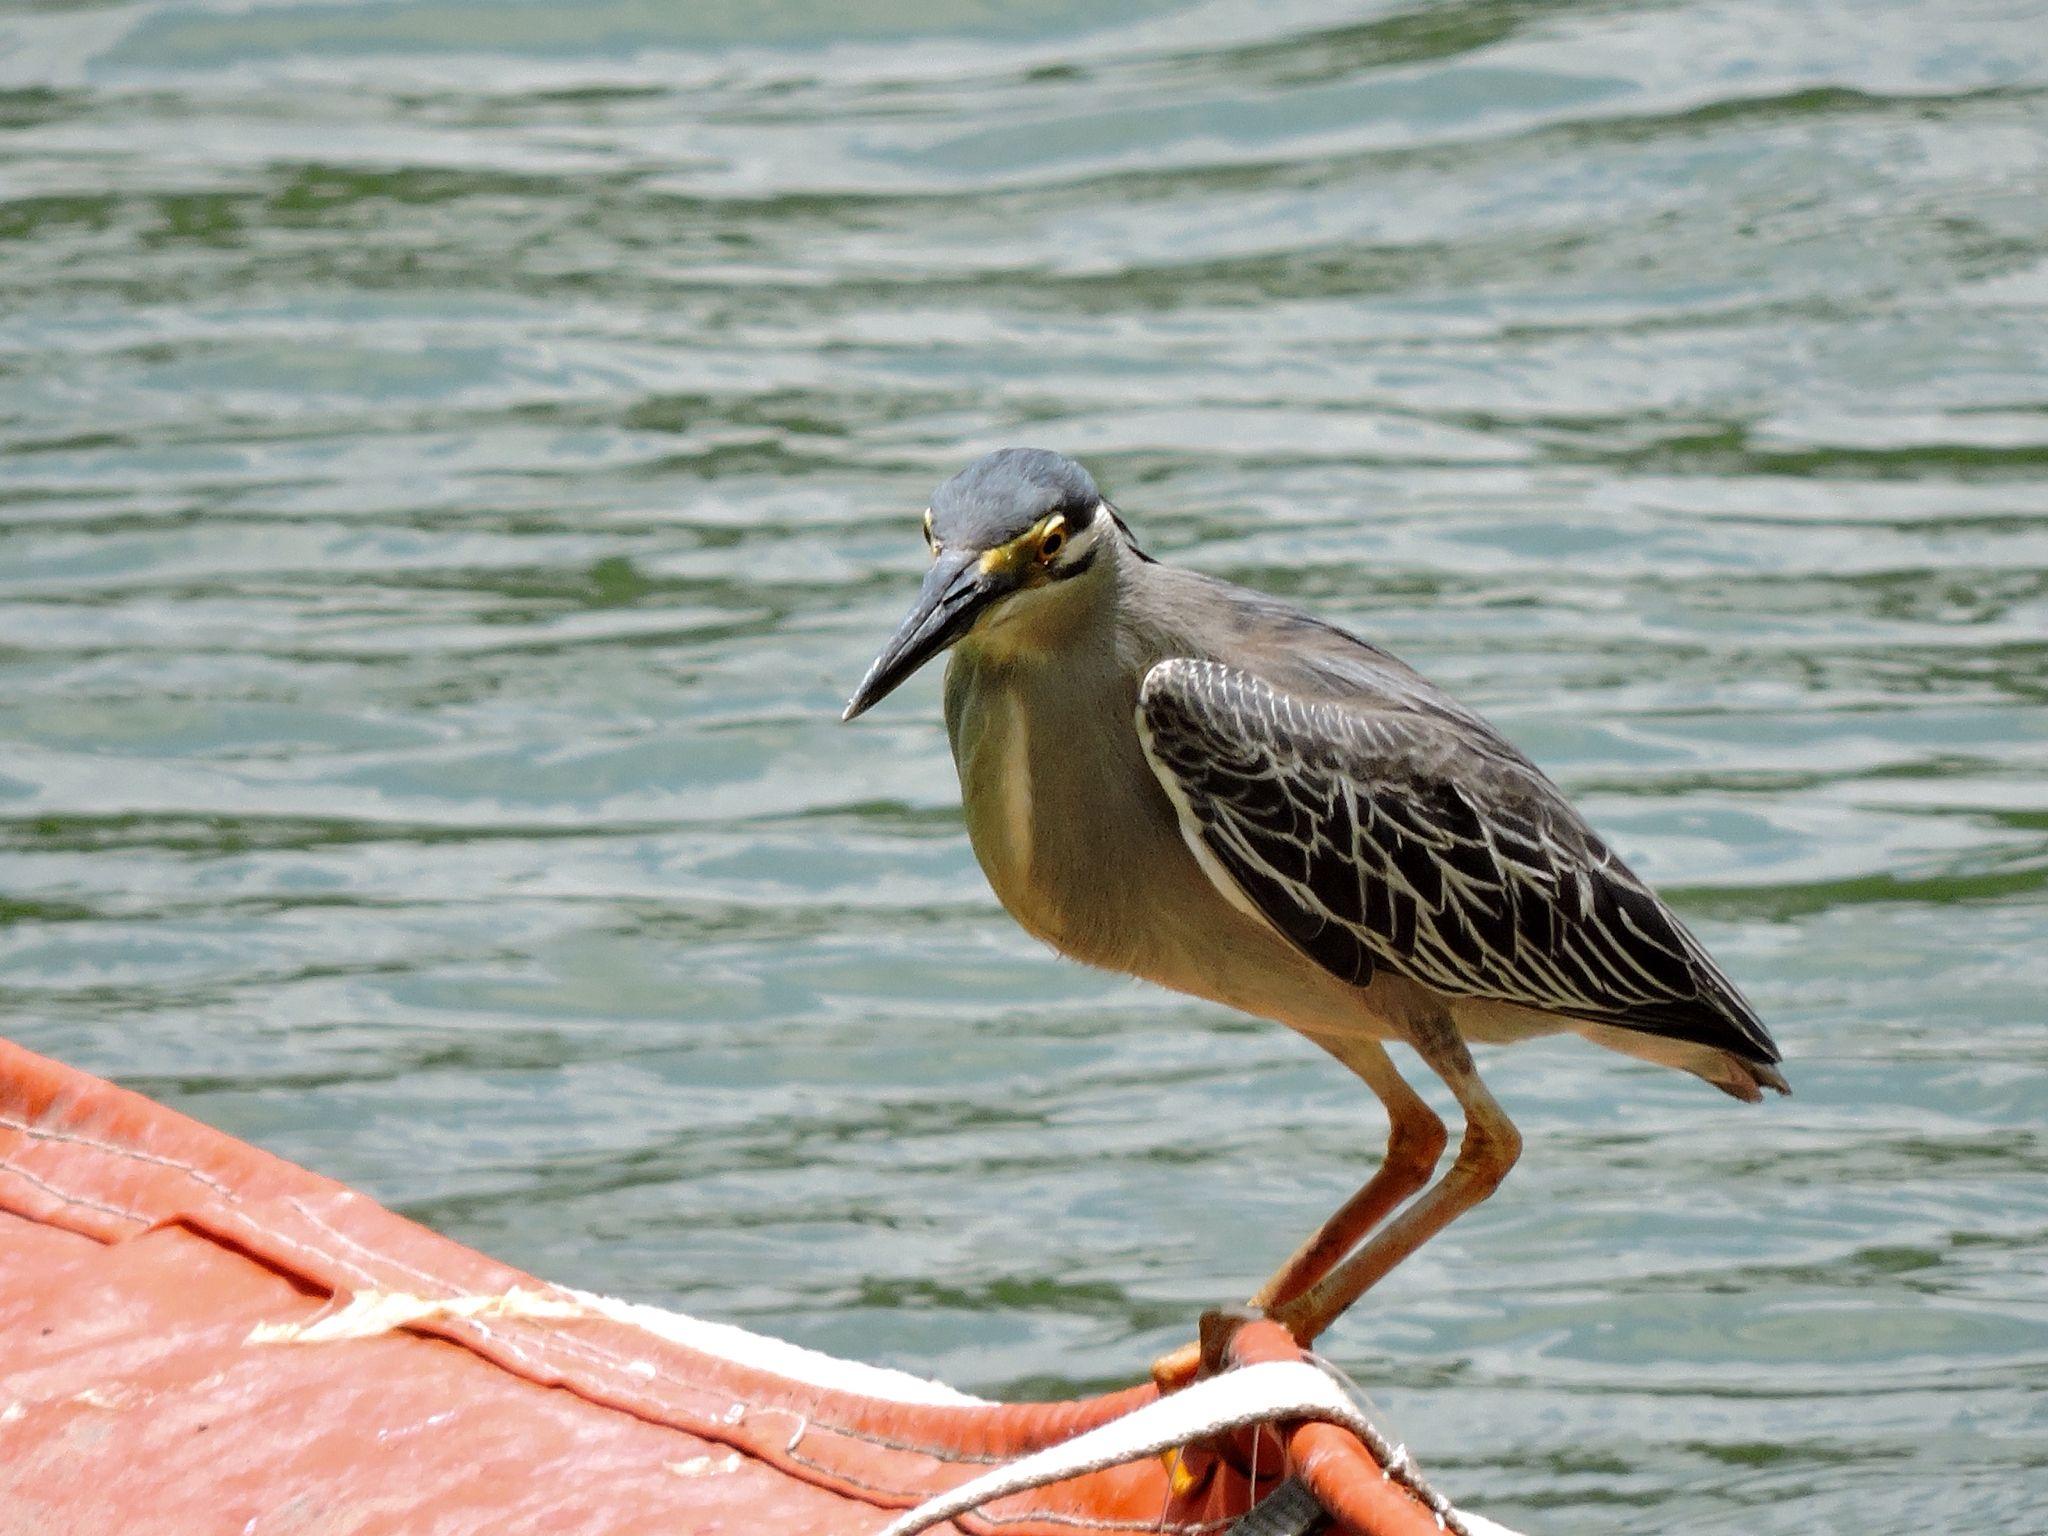 A Striated Heron poised on the boom waiting for its lunch to come by.